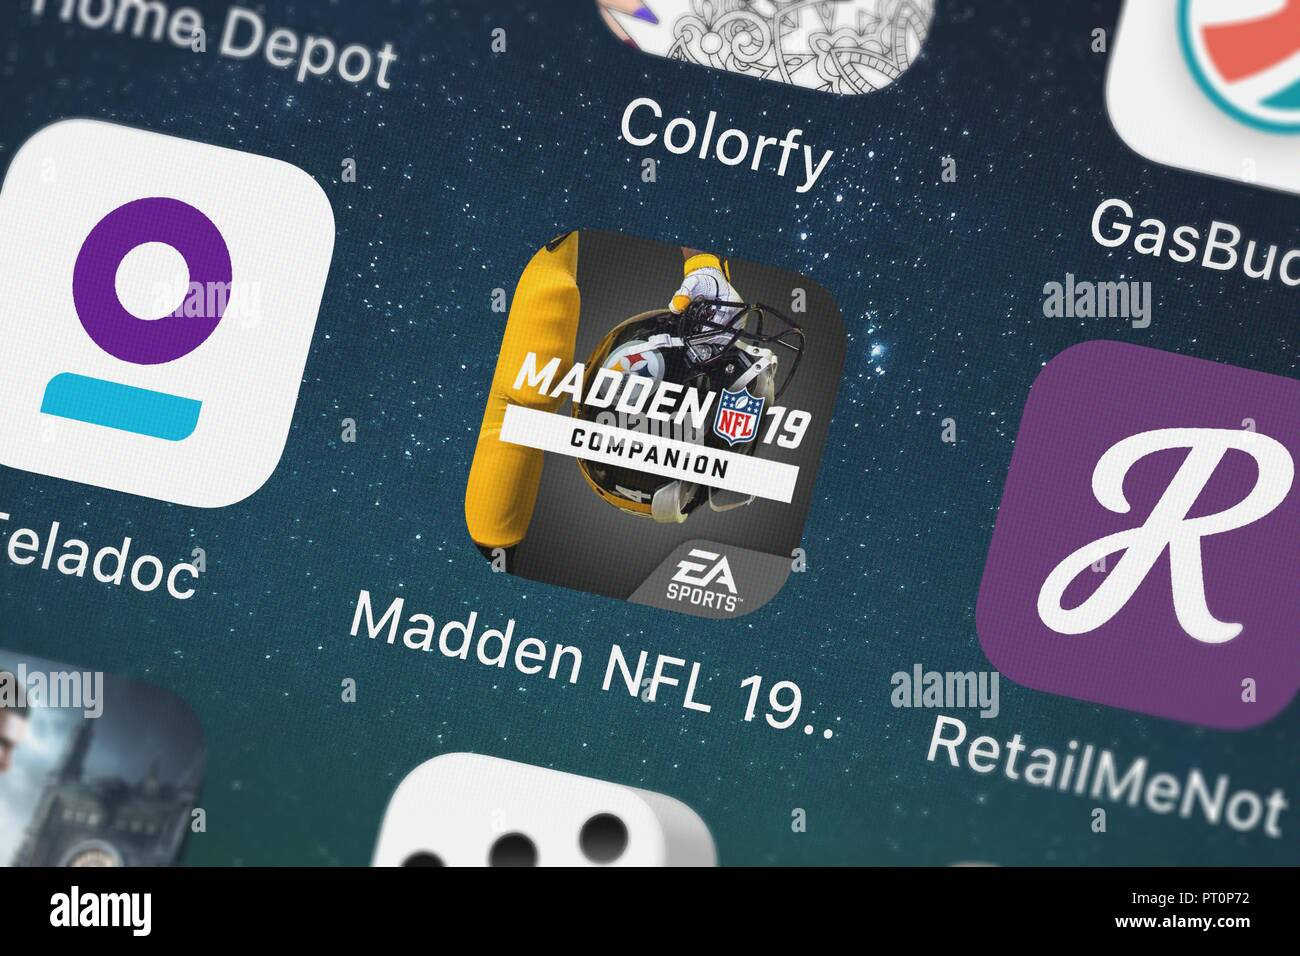 Londres, Royaume-Uni - Octobre 05, 2018 : Close-up shot of Electronic Arts populaires de l'app Madden NFL 19 compagnon. Banque D'Images